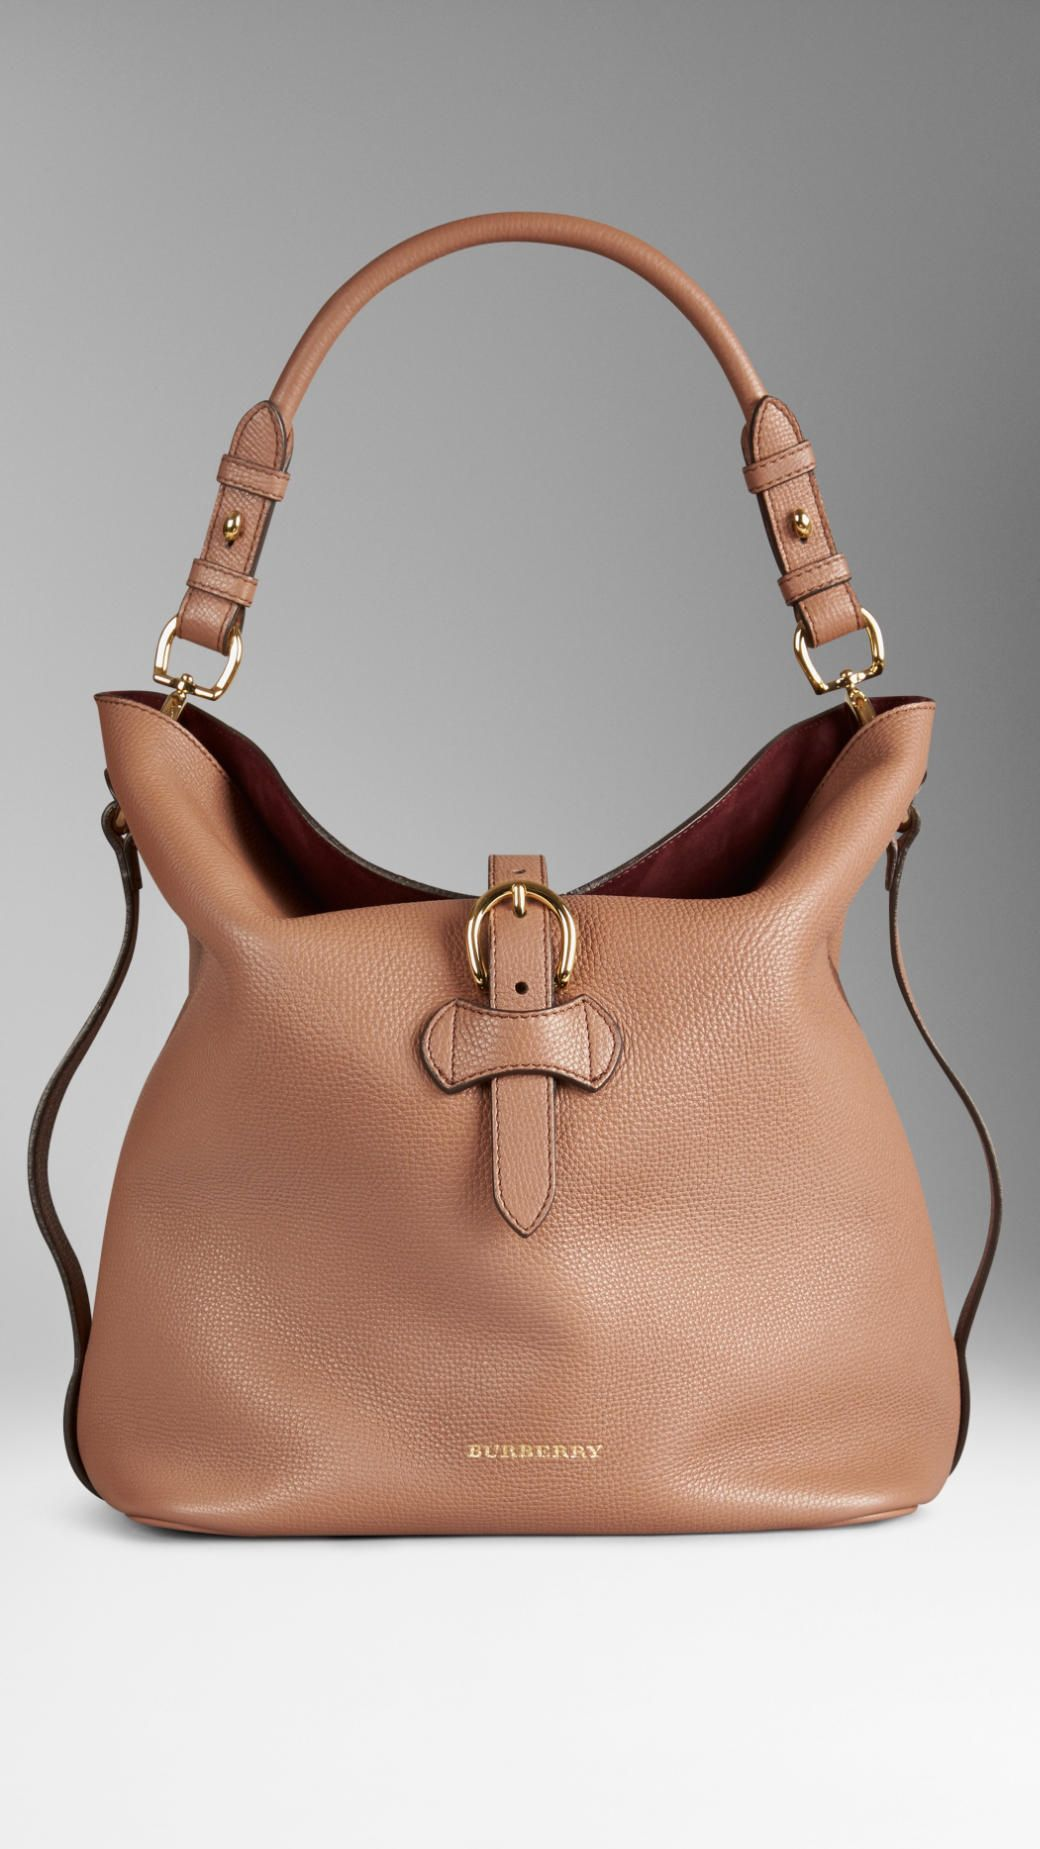 b72ce56c3aa Burberry ~ Medium Buckle Detail Leather Hobo Bag, Dark Sand Hobo Handbags,  Hobo Bags